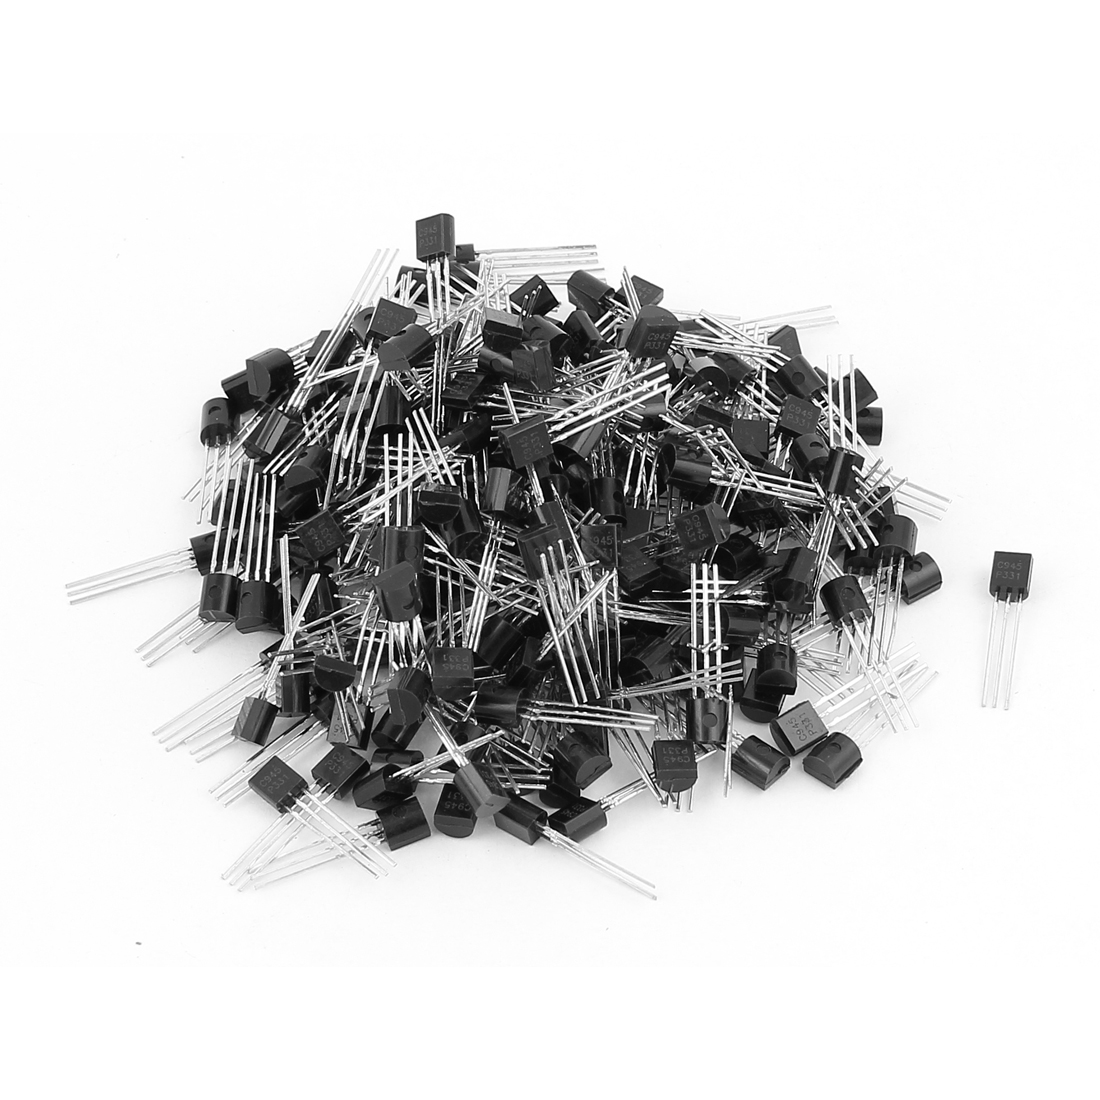 250 Pcs C945 TO-92 NPN Bipolar Low Power Junction Transistors 50V 0.15A